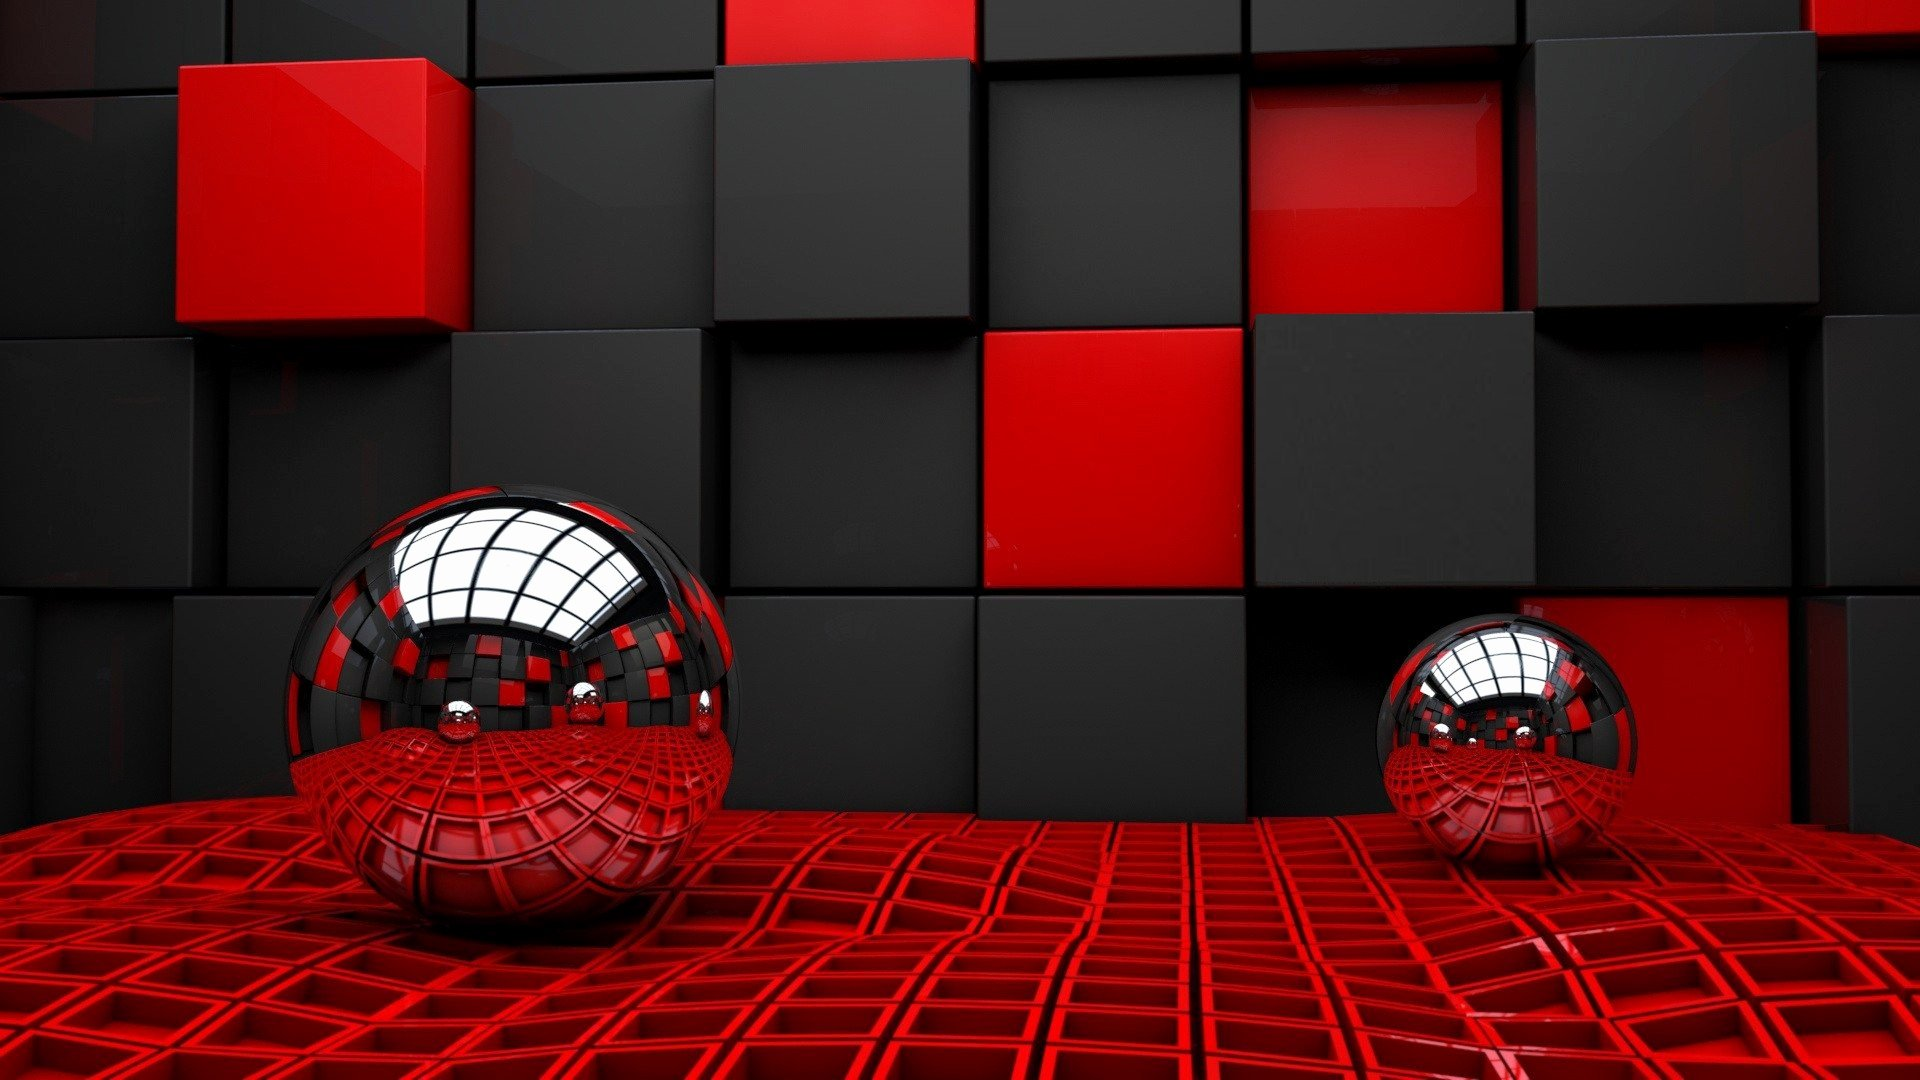 Free 3d Wallpaper Downloads Awesome Free 3d Backgrounds